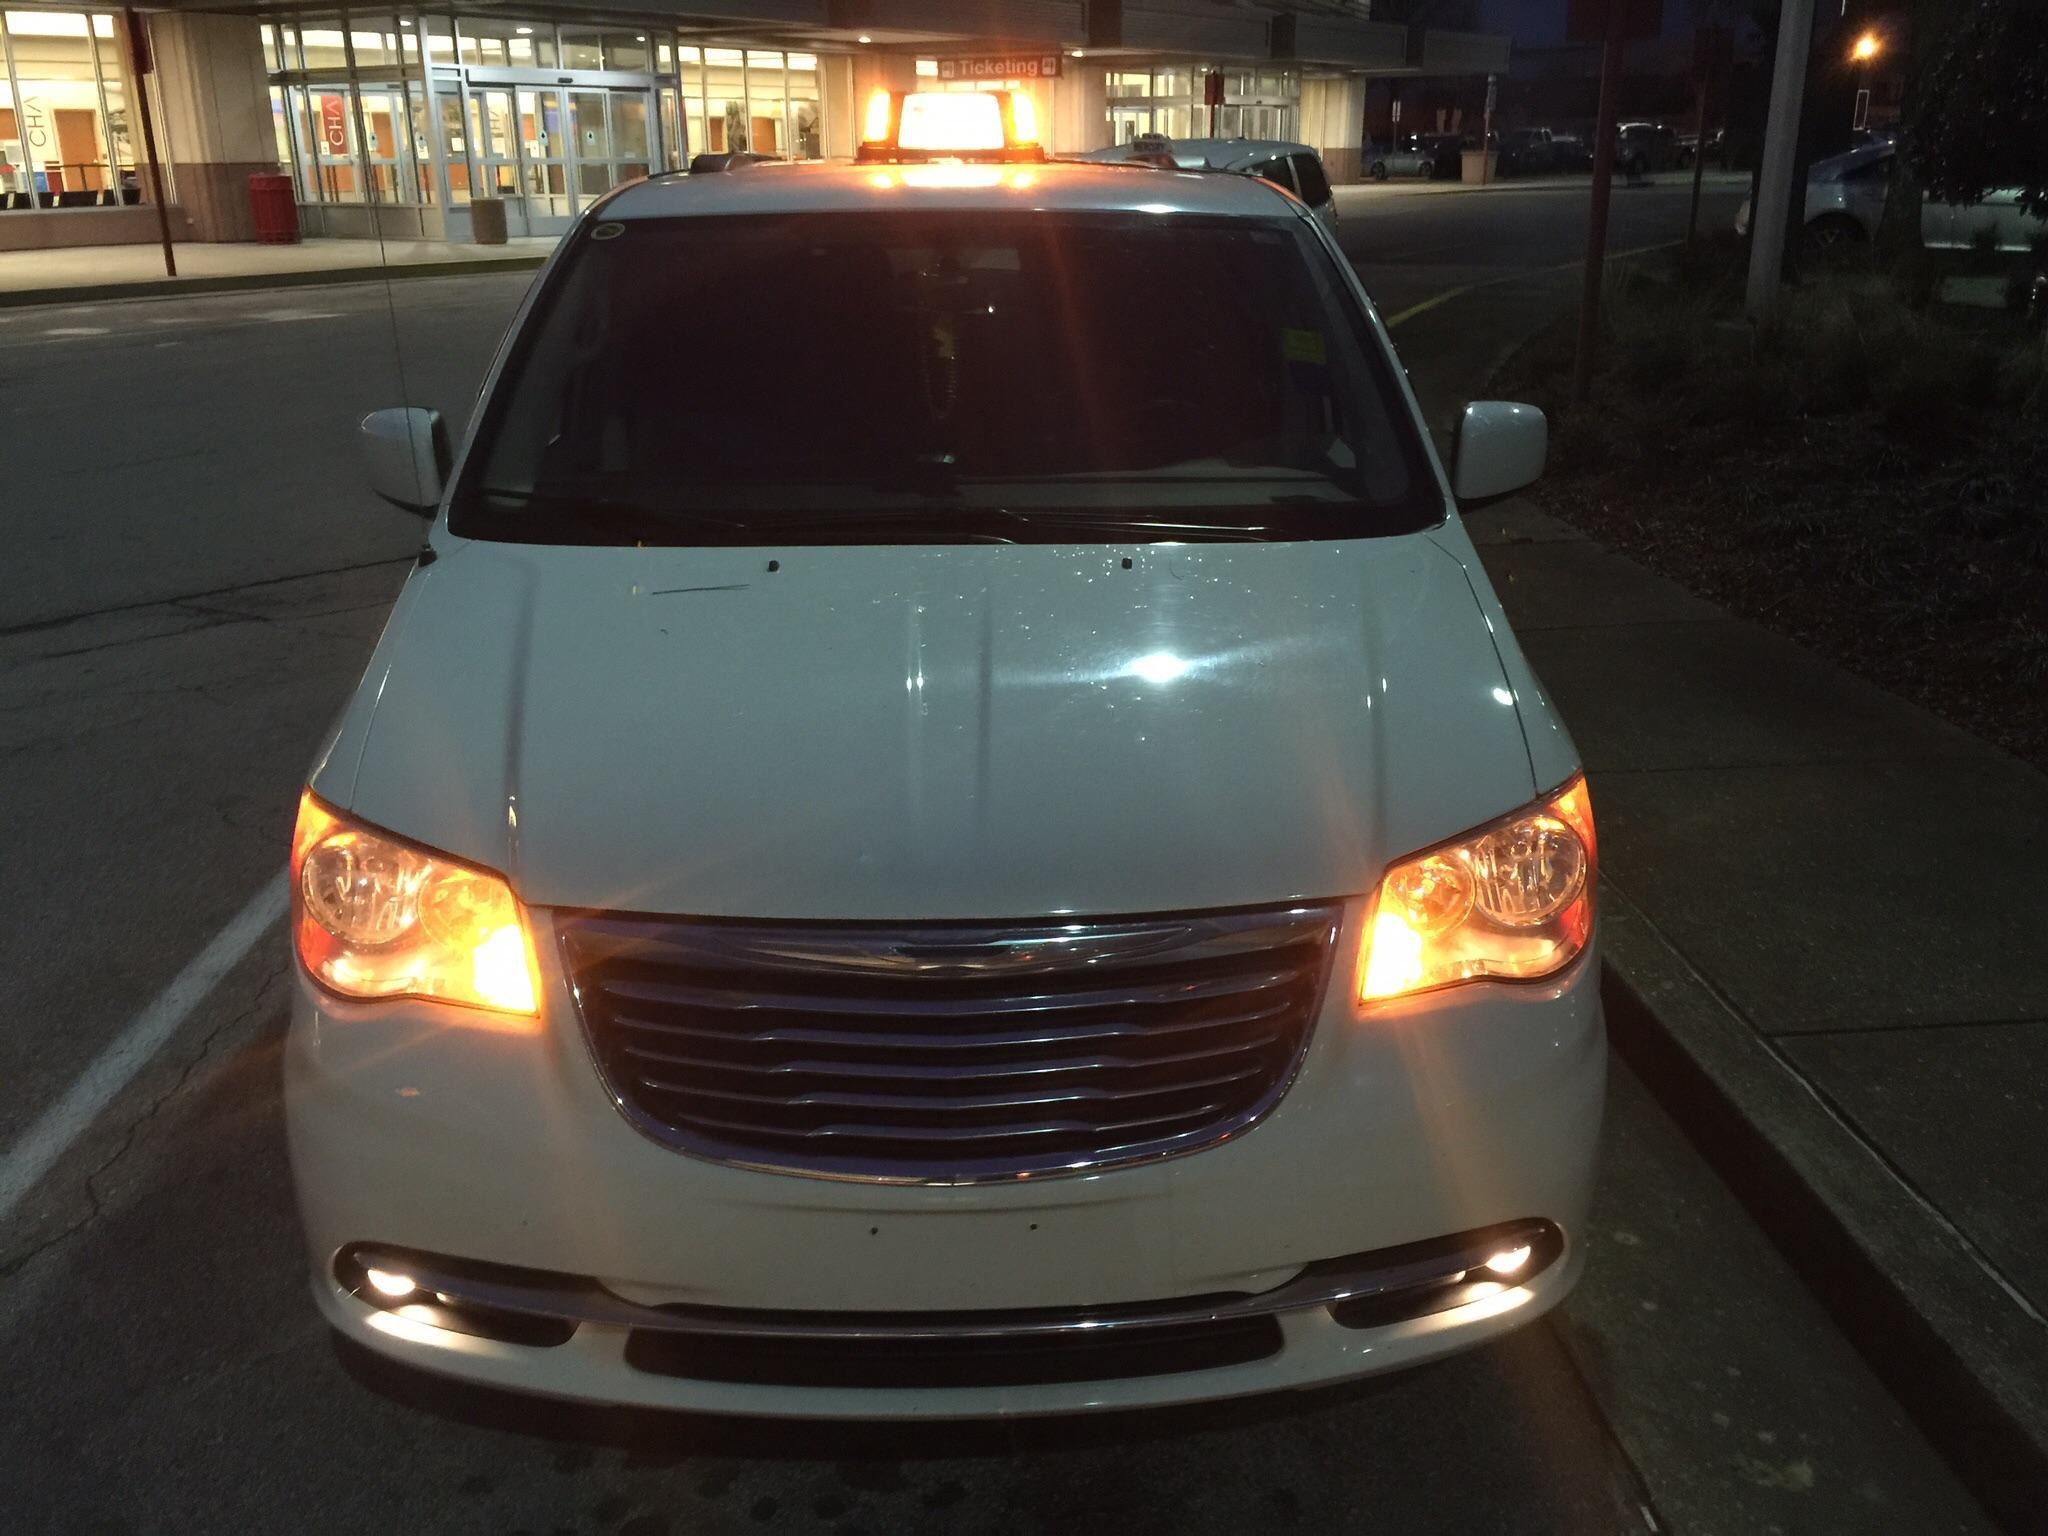 Prestige Airport Taxi Services In Chattanooga Tn 37412